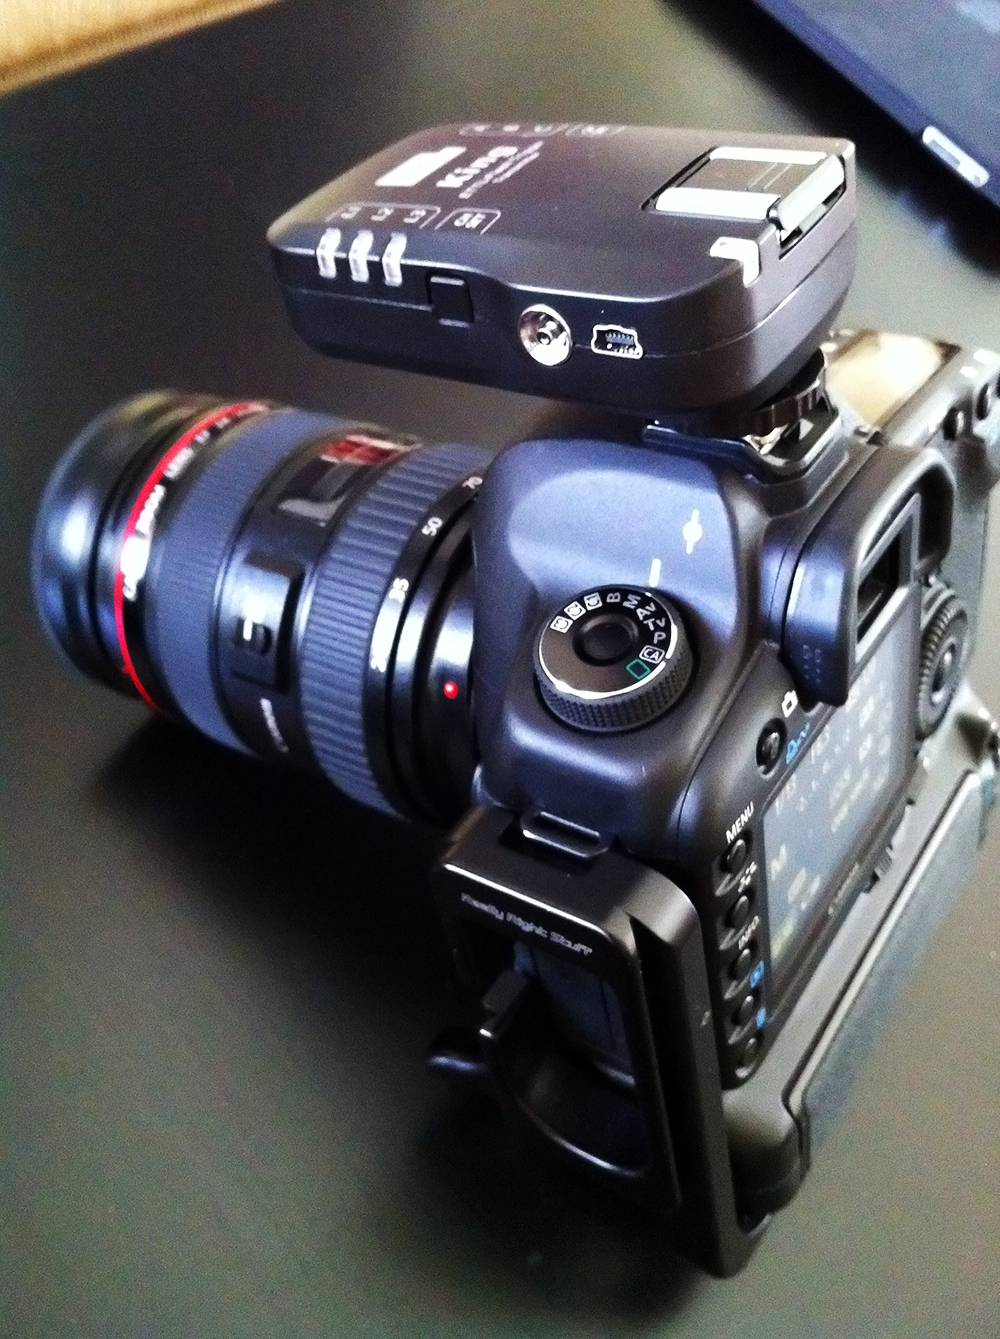 Pixel King E-TTL radio trigger attached to Canon 5D mark II